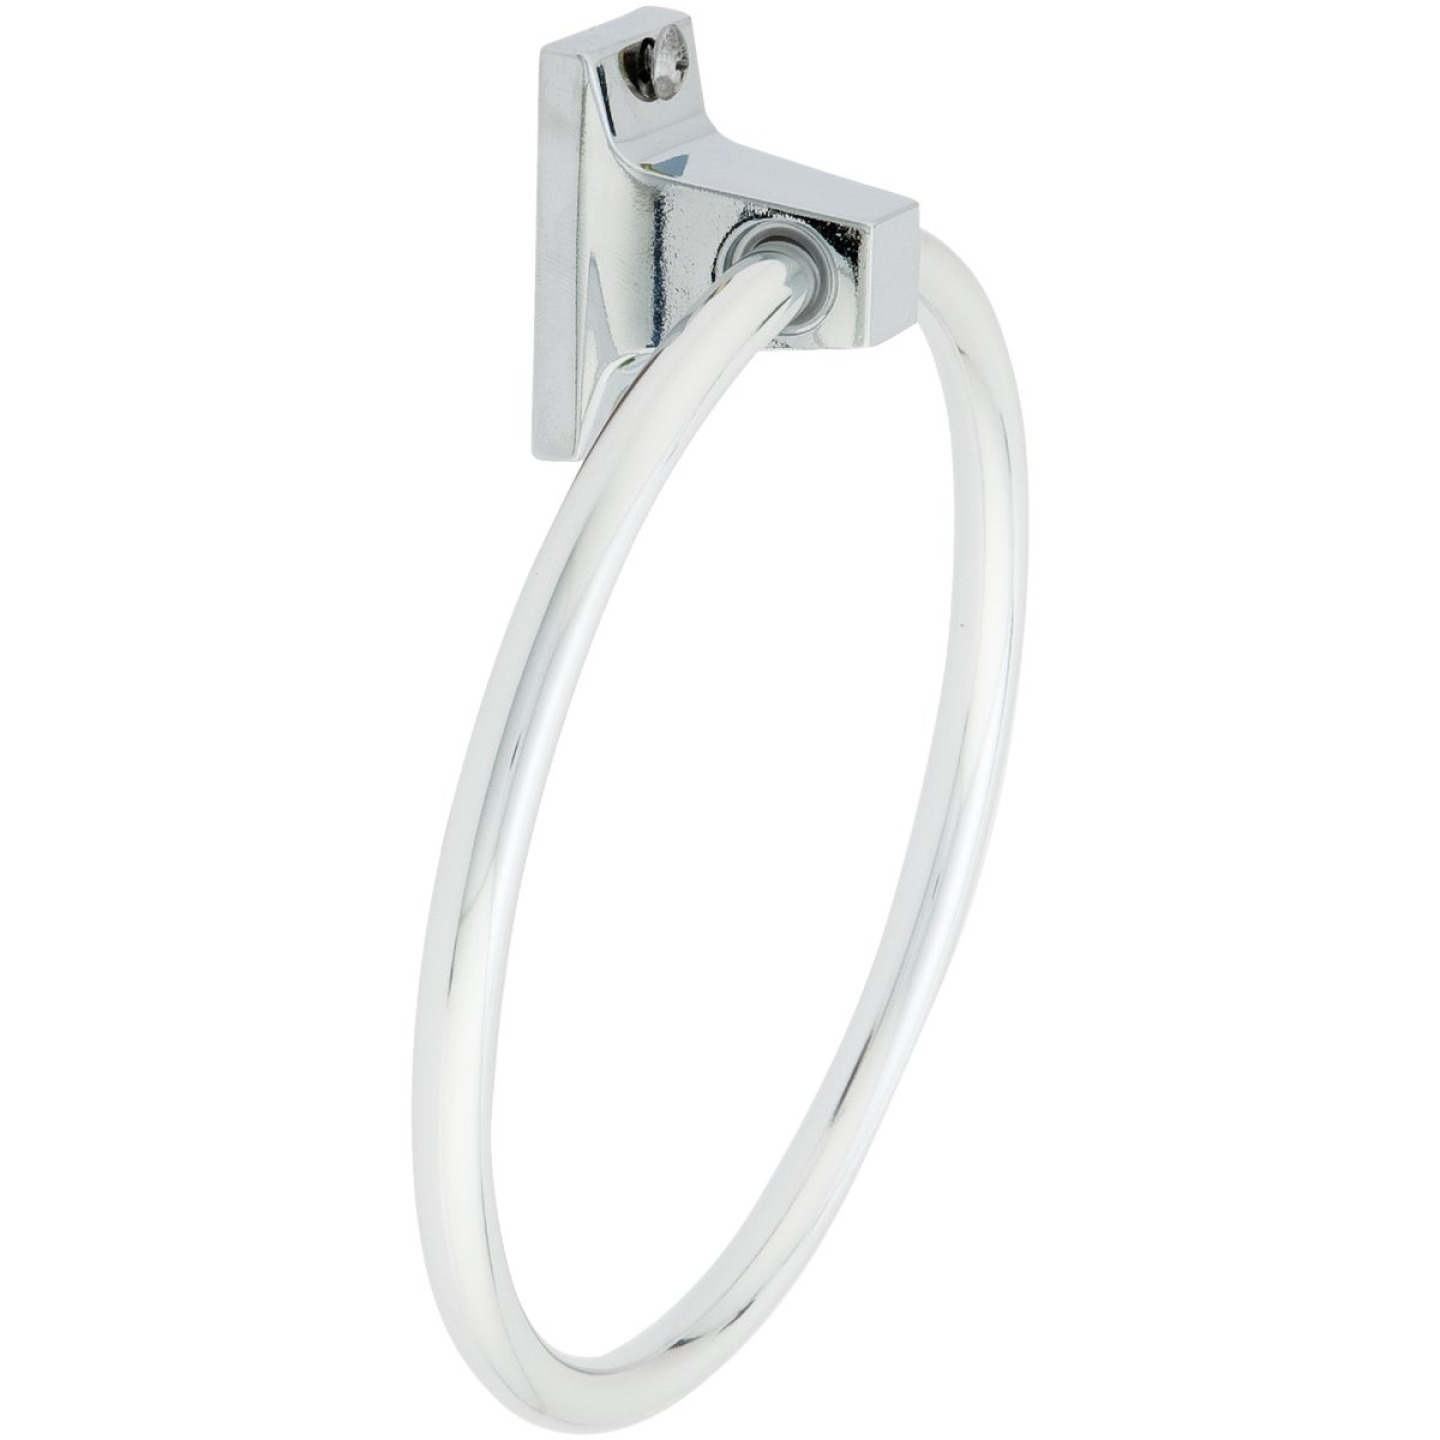 Home Impressions Chrome Towel Ring Image 1